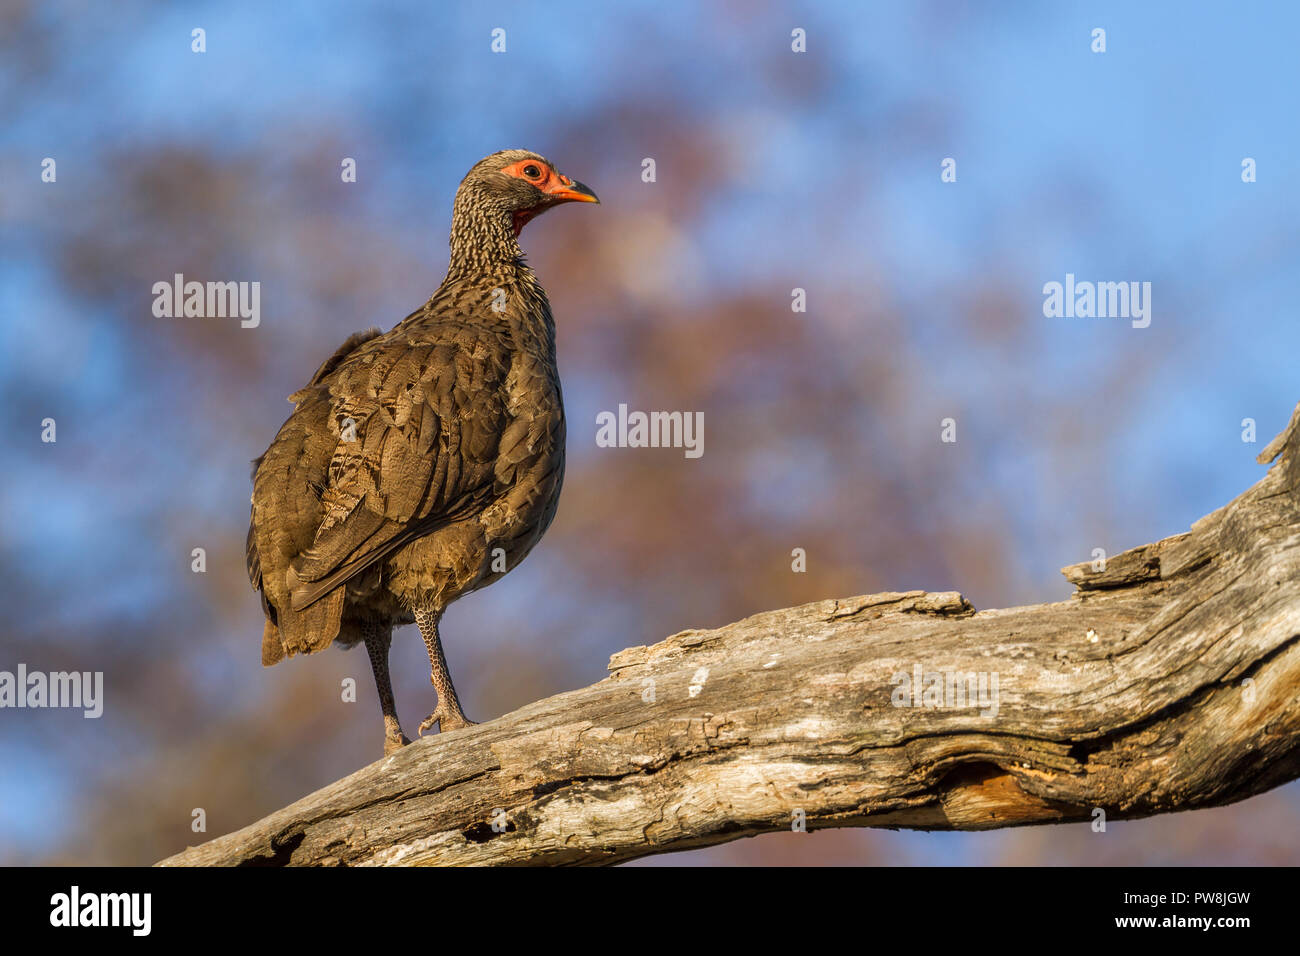 Swainson's Spurfowl in Kruger National park, South Africa ; Specie Pternistis swainsonii family of Phasianidae - Stock Image